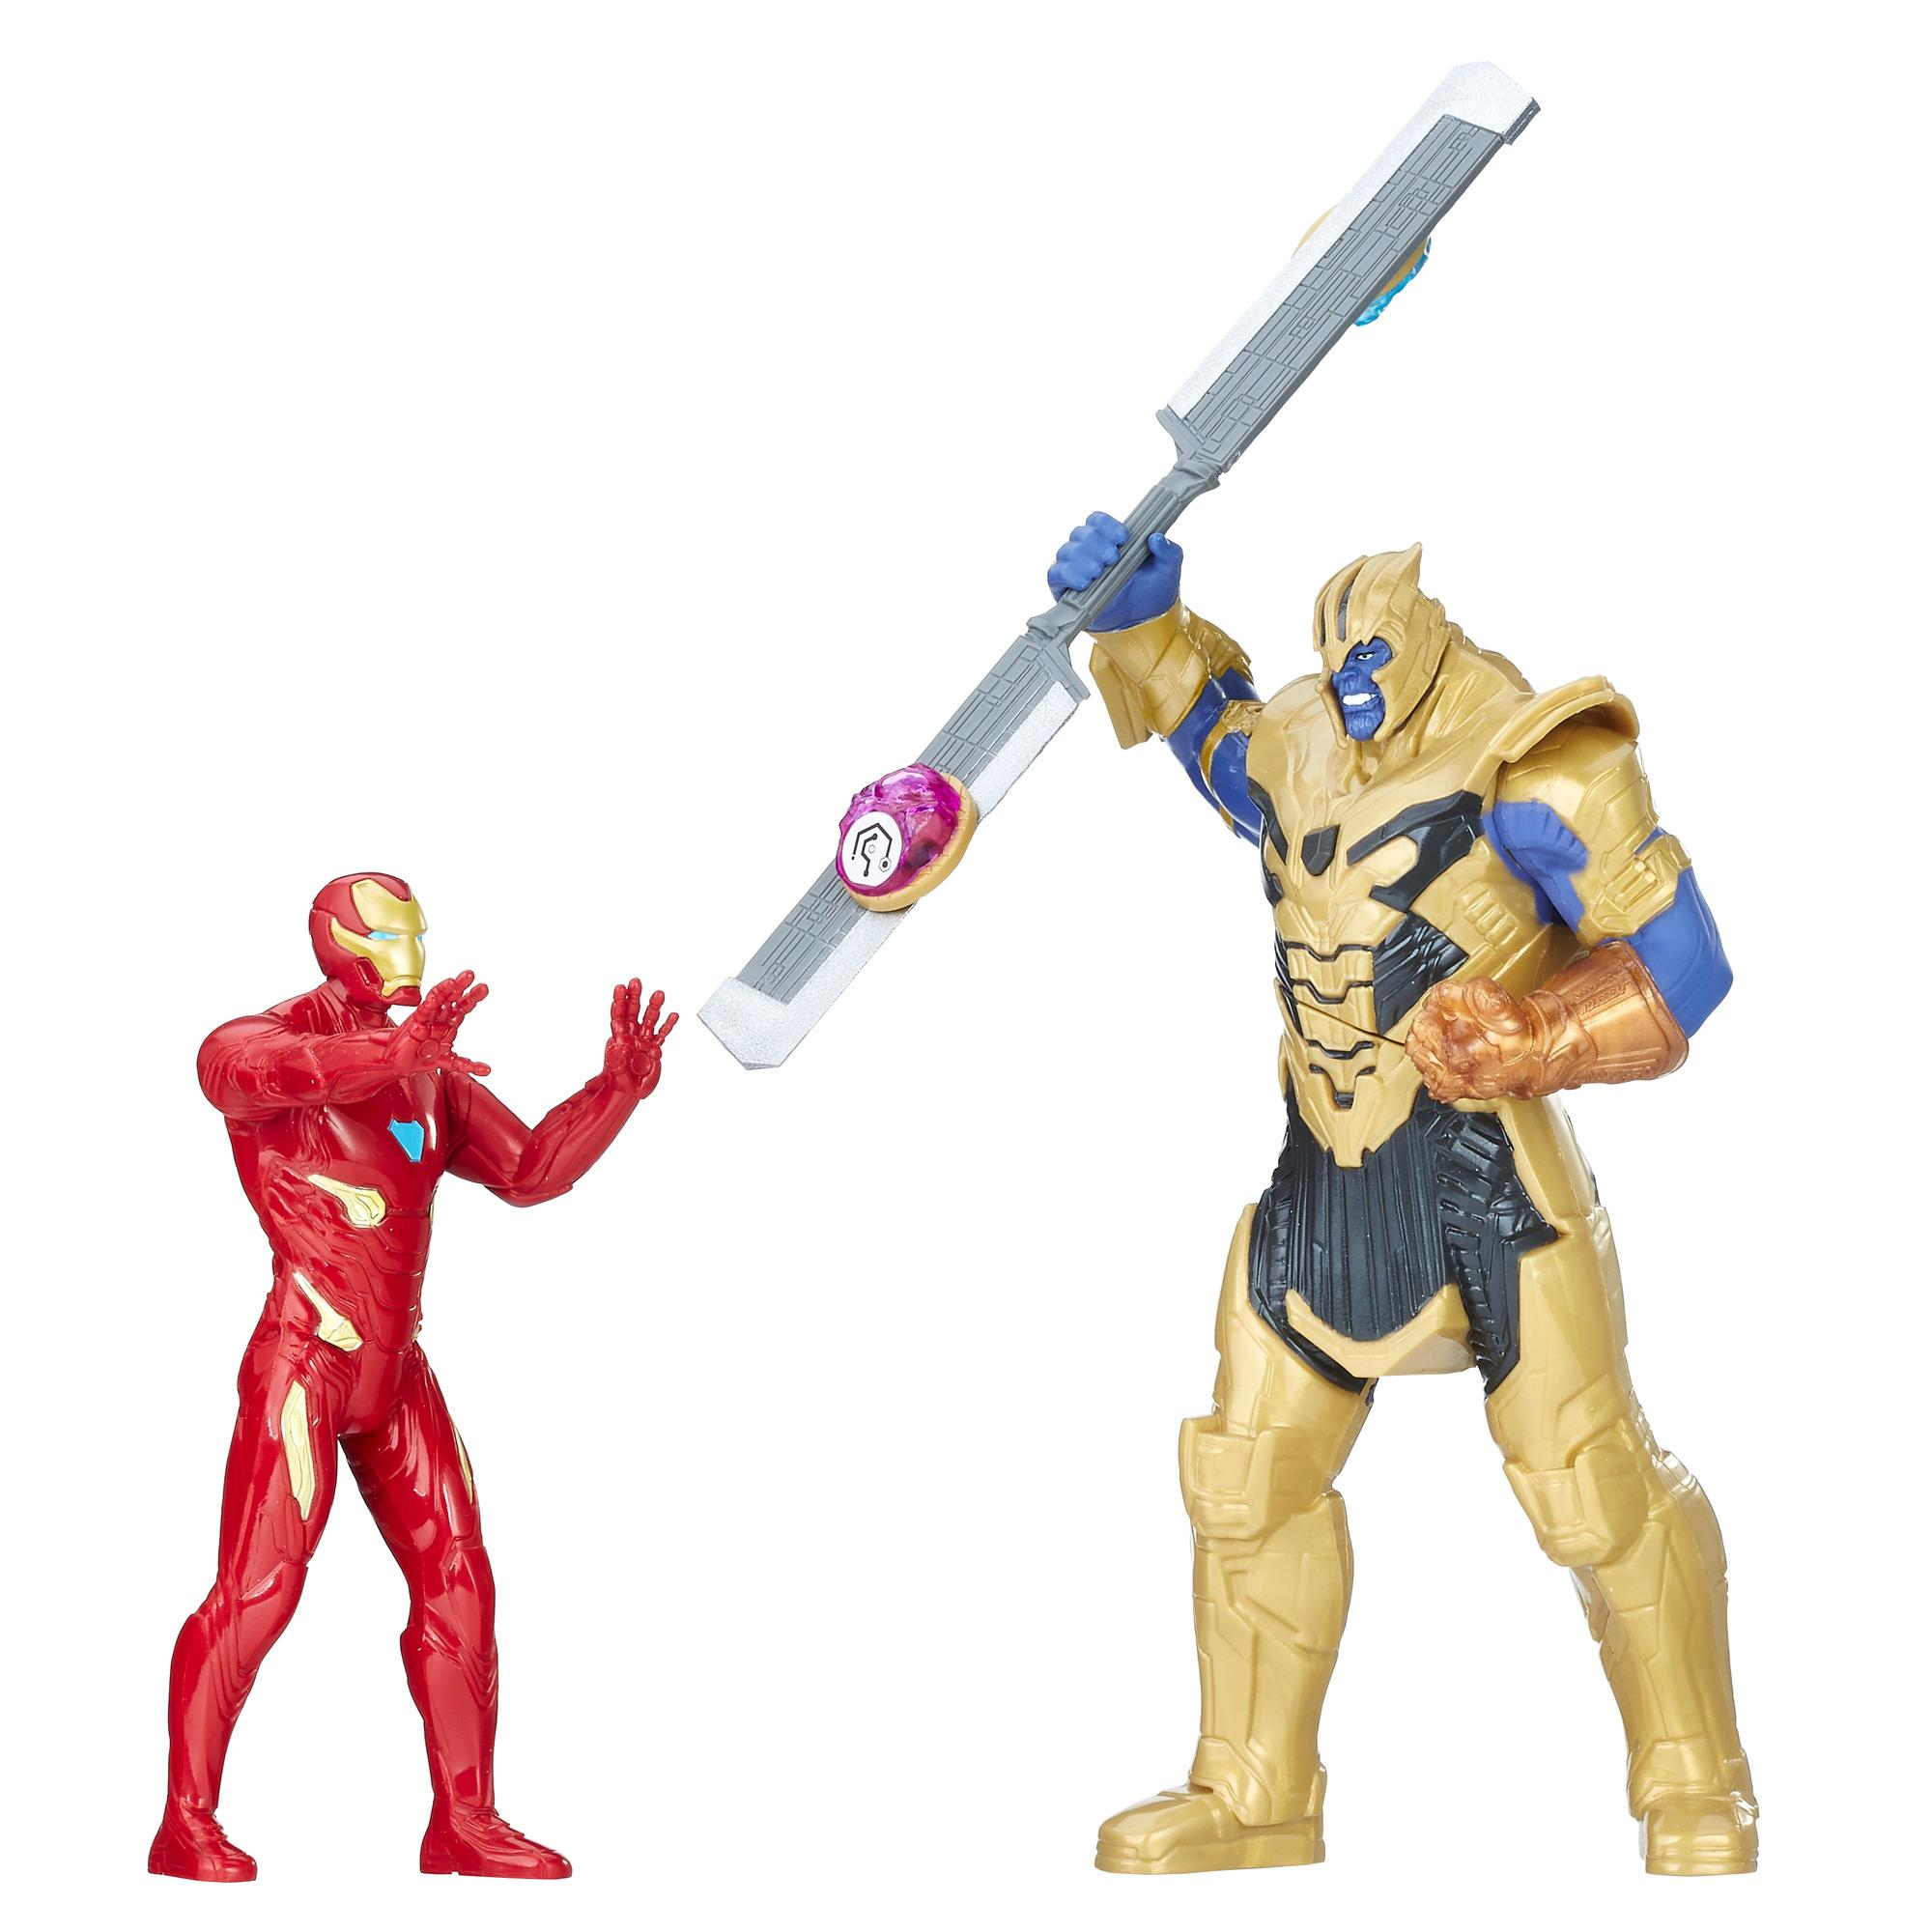 Marvel Avengers: Infinity War Iron Man vs. Thanos Battle Set